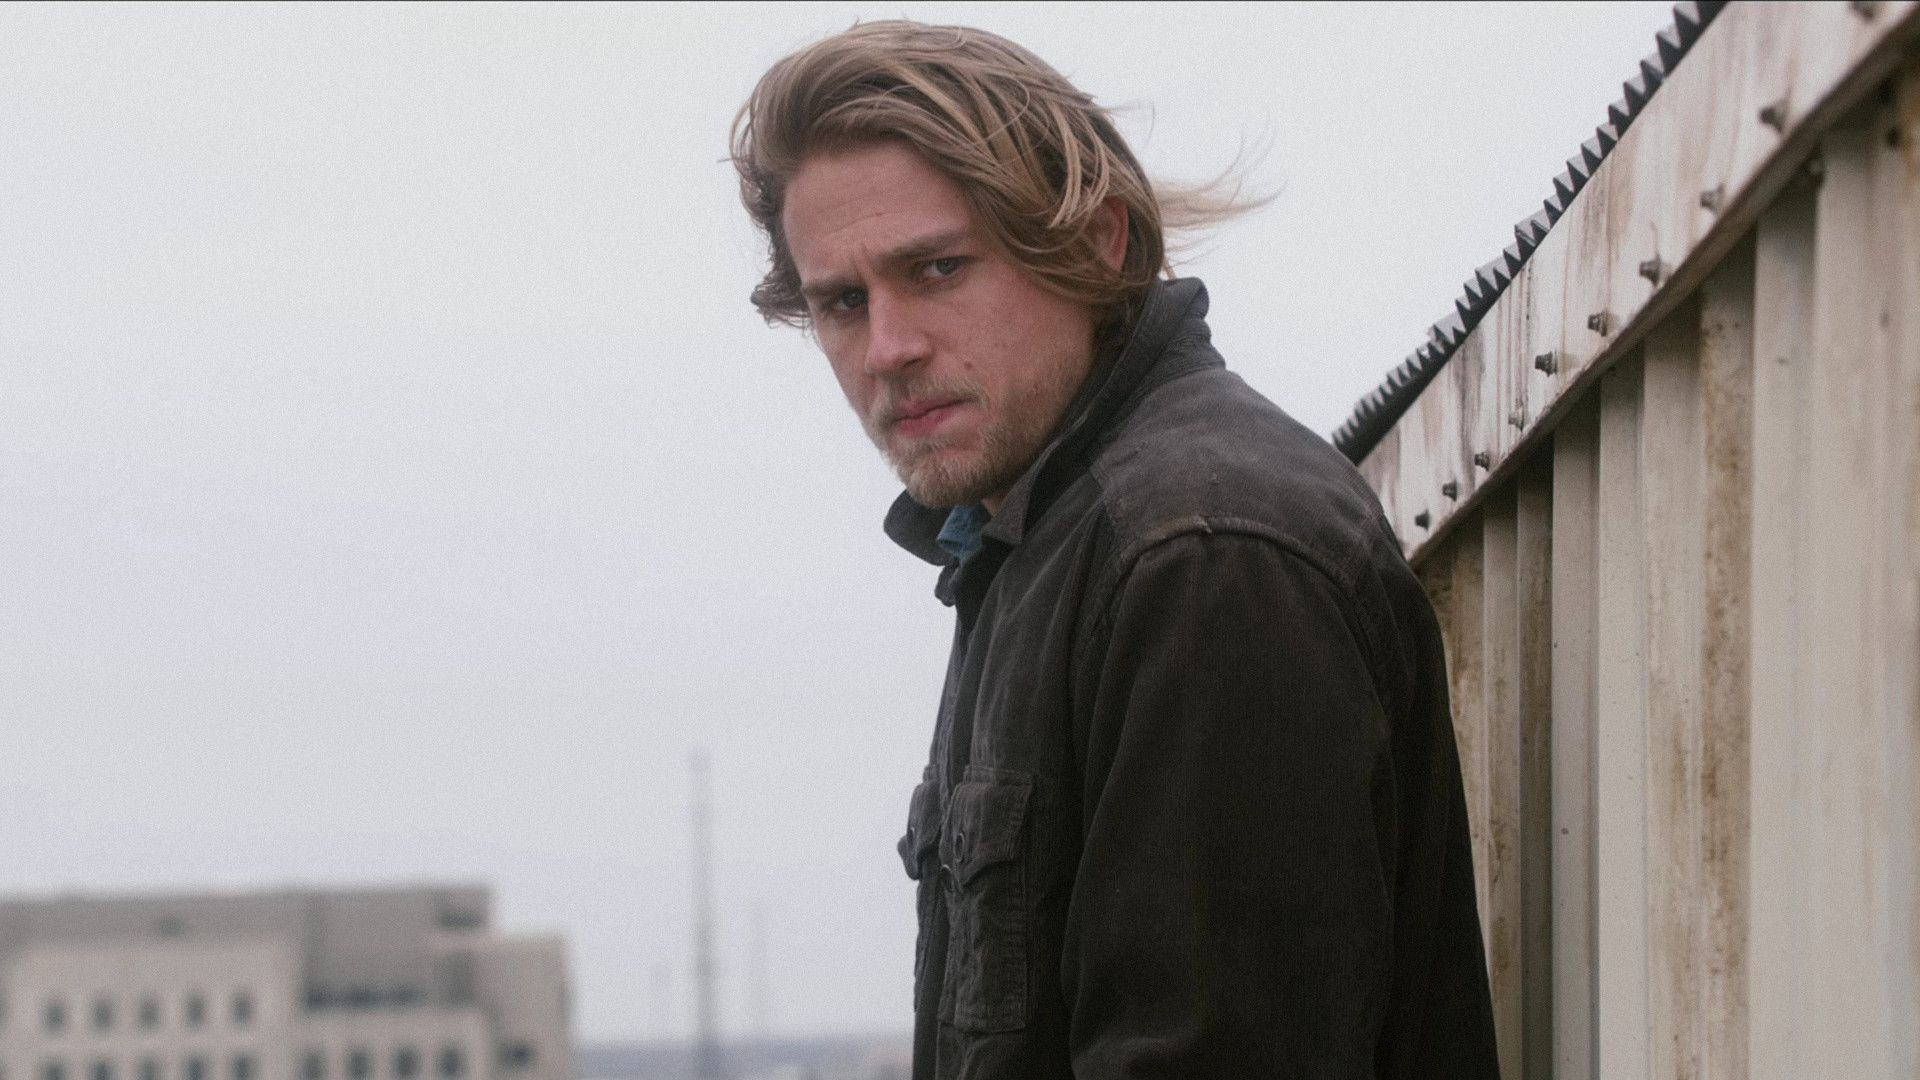 Charlie Hunnam Wallpapers 1920x1080